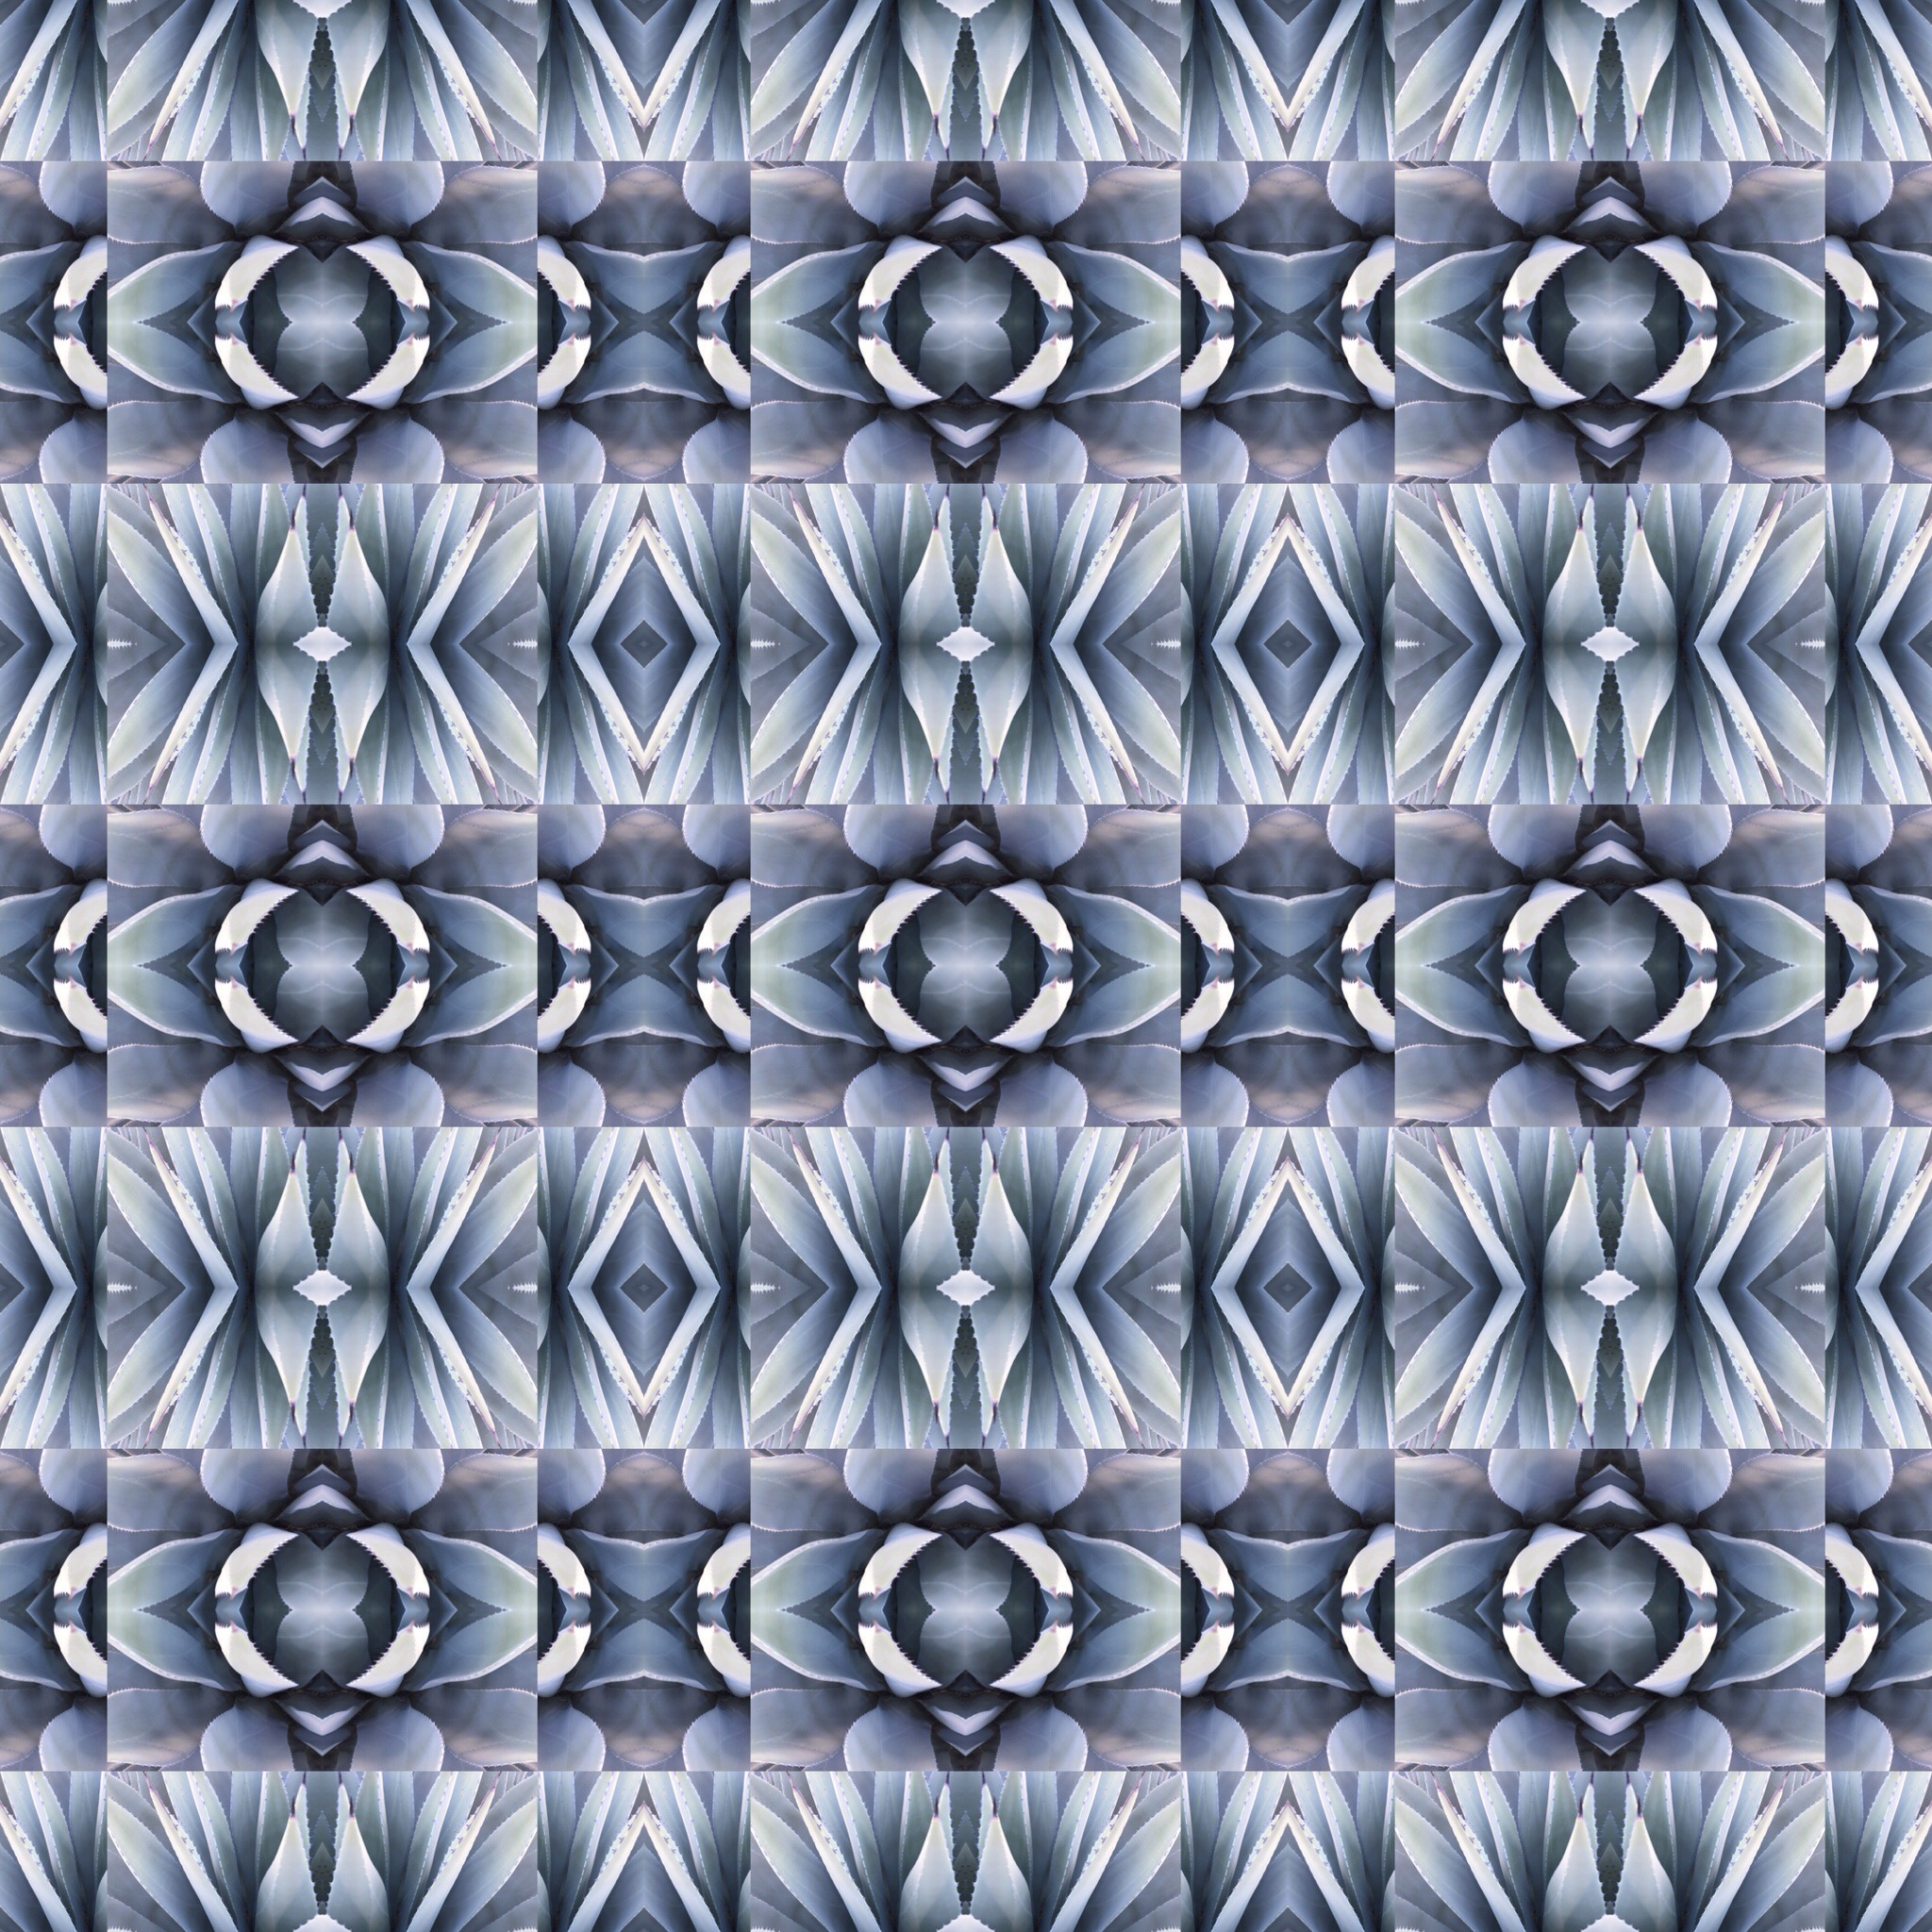 Fabric with a repeated design